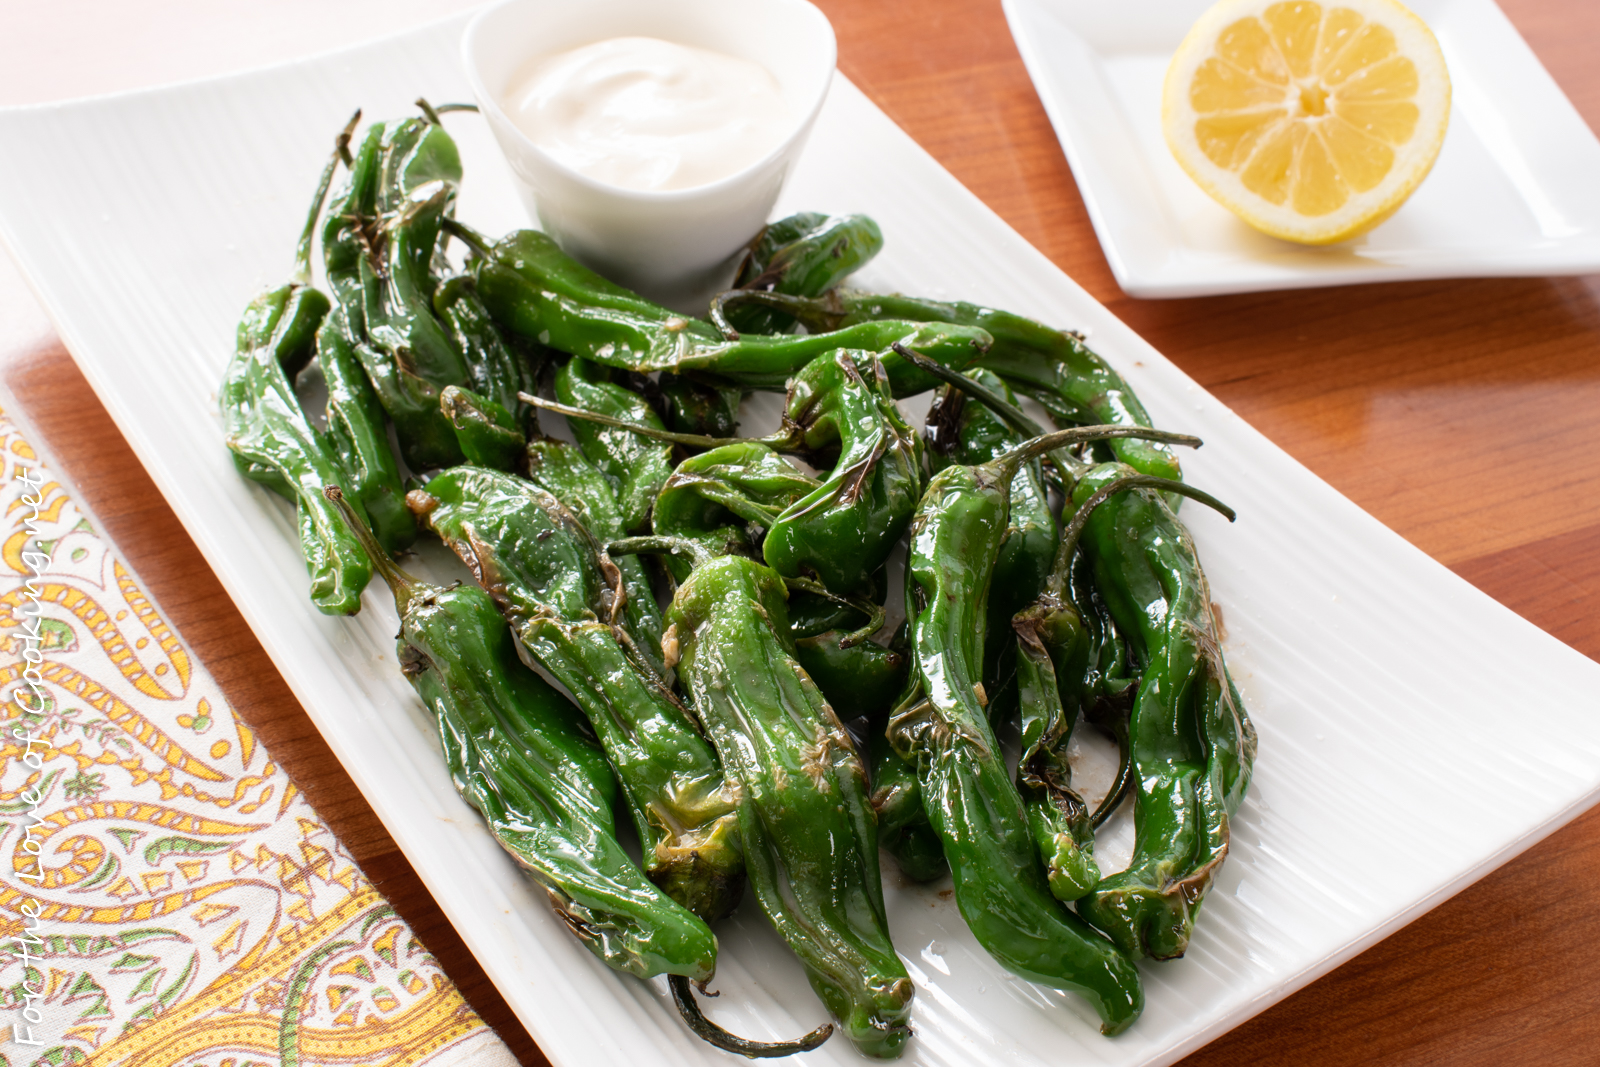 Blistered Shishito Peppers with Lemon and Garlic